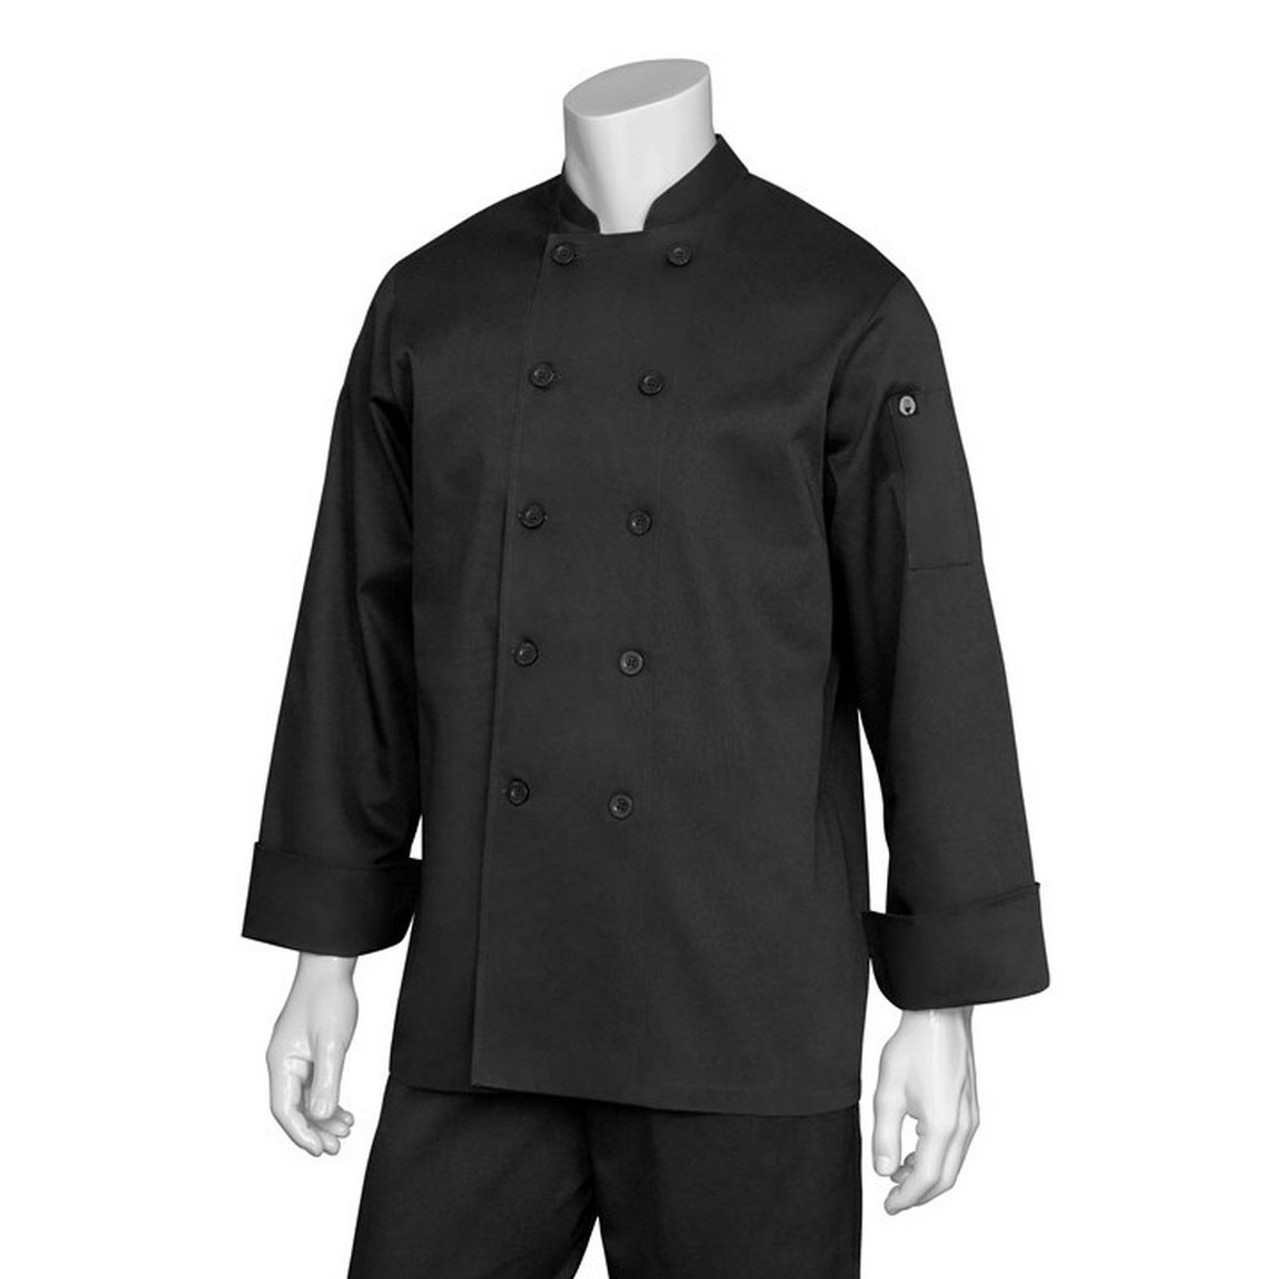 83d60c22b12 Plain Black Chef Jacket Online